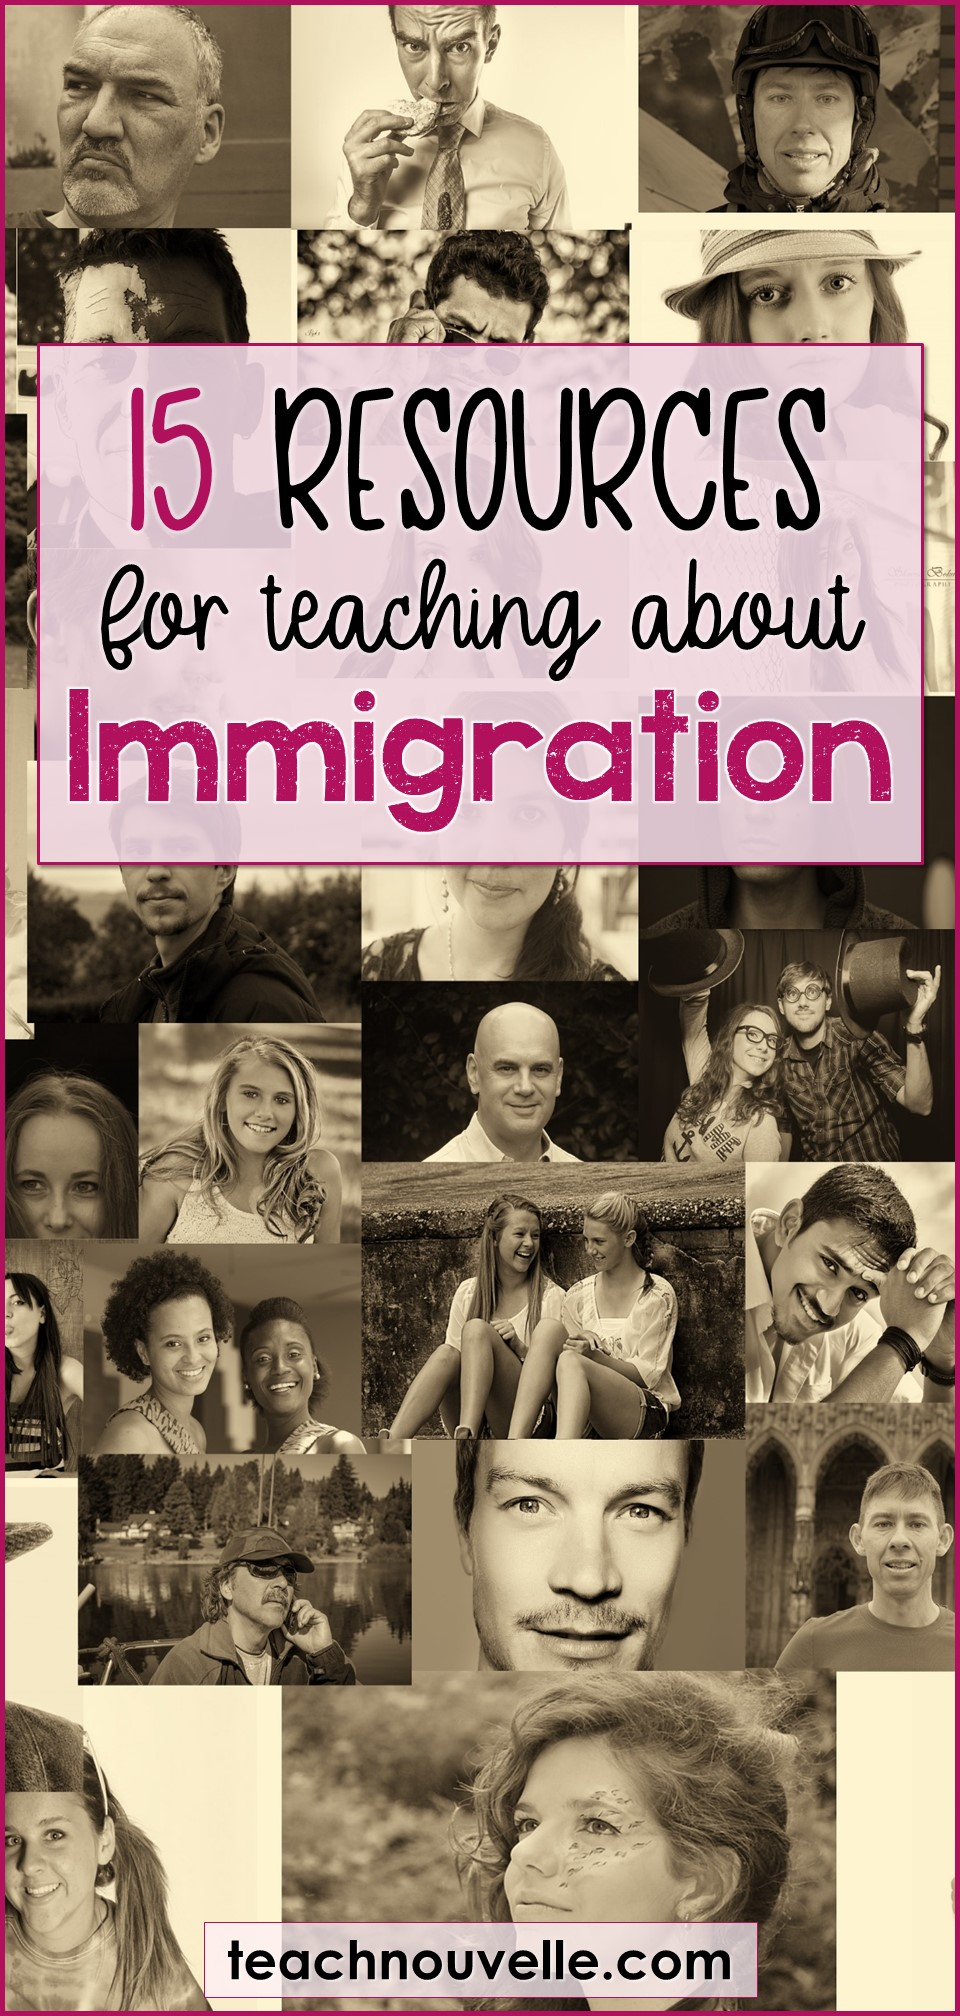 15 Resources for Teaching about Immigration pin